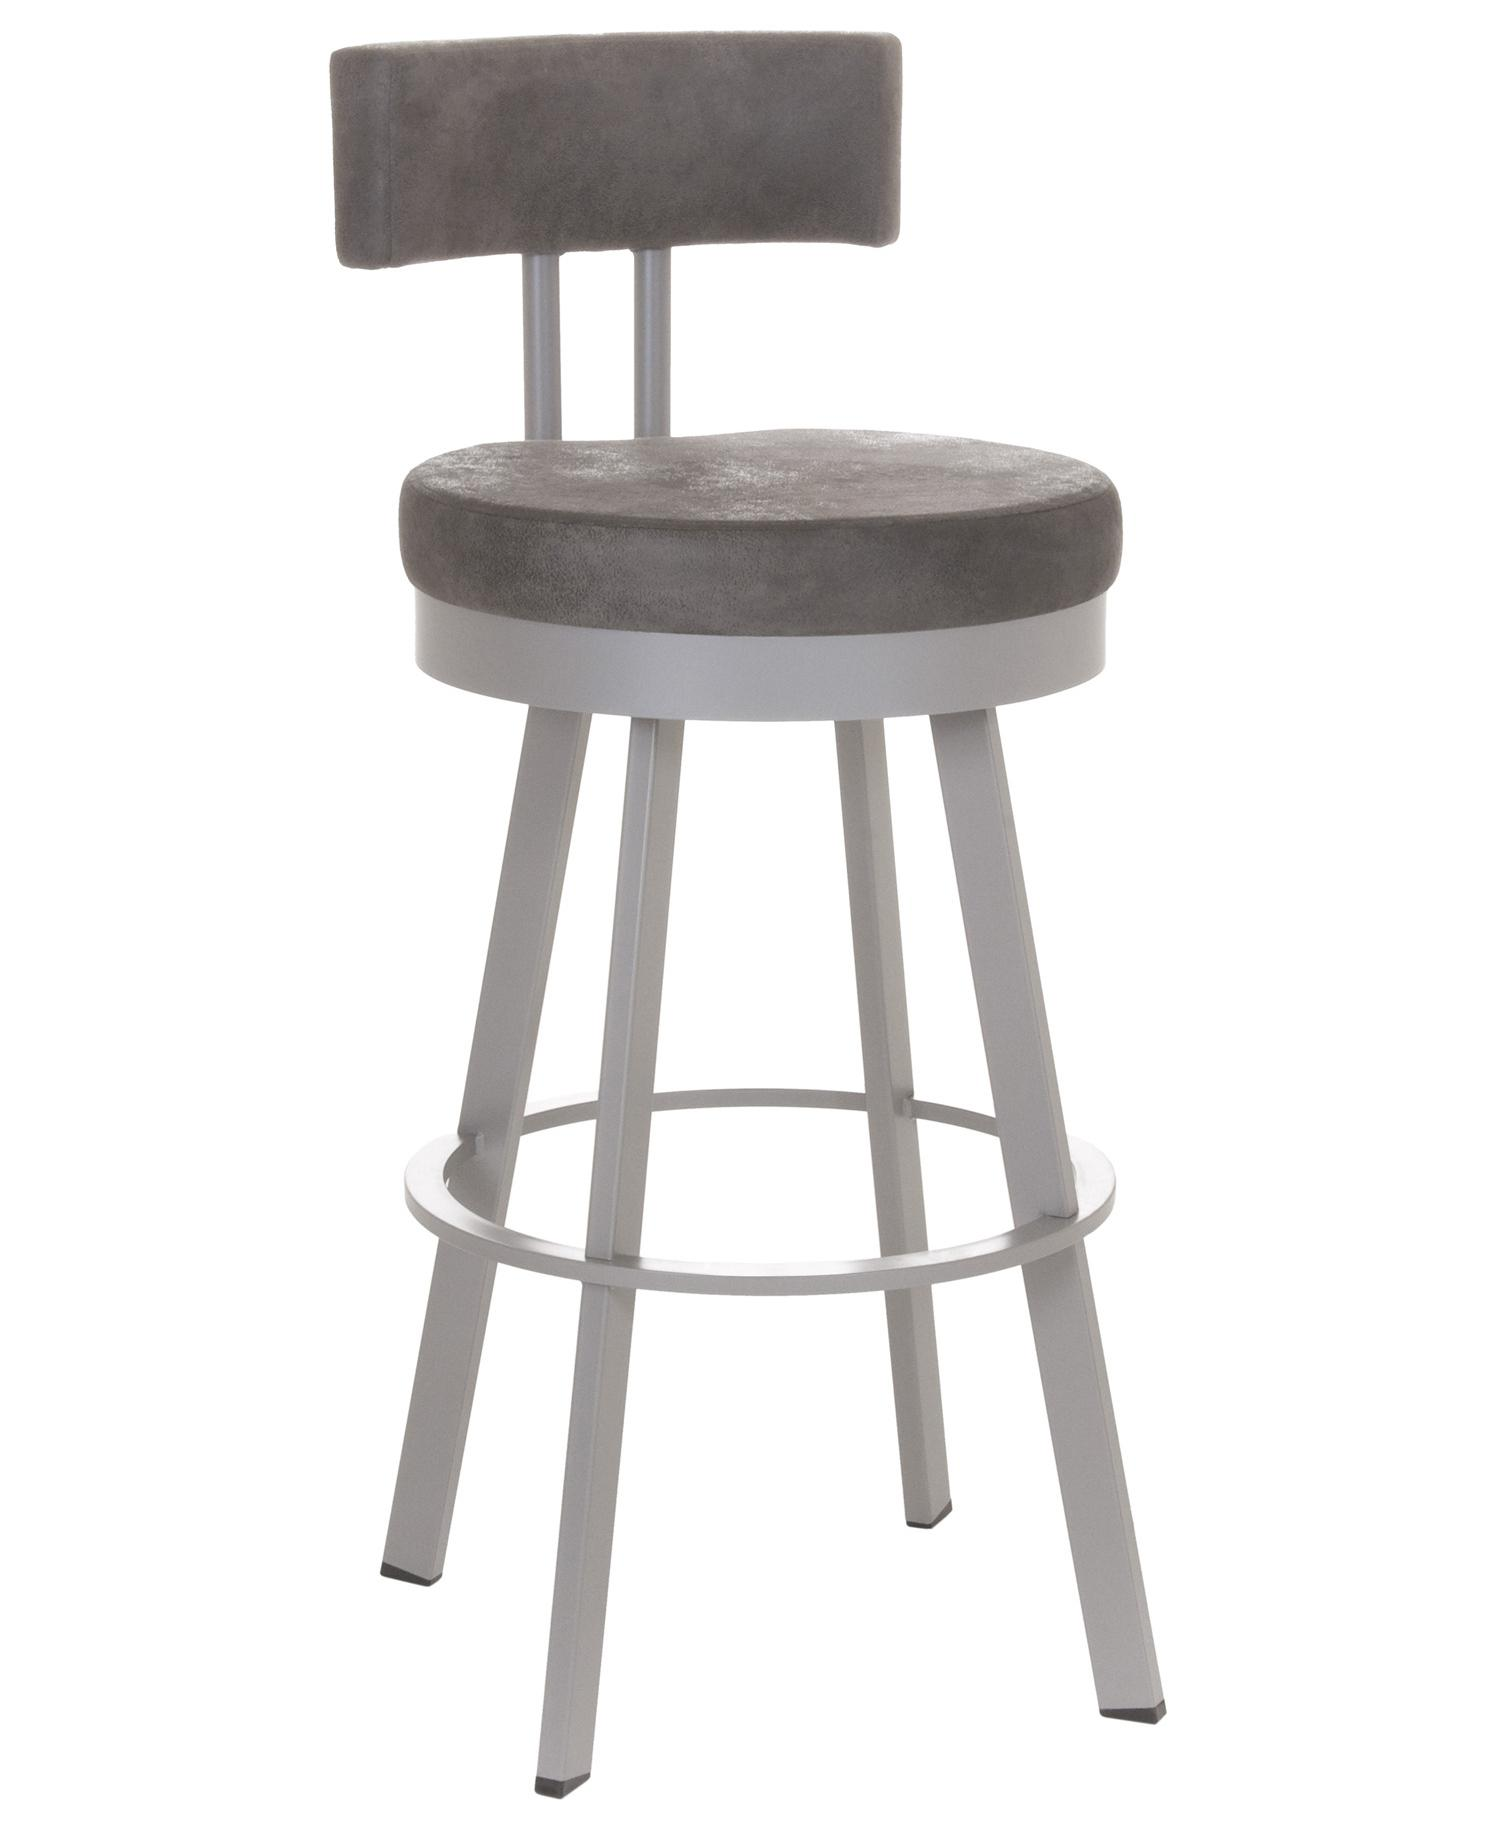 """Urban 26"""" Barry Swivel Stool by Amisco at Dinette Depot"""